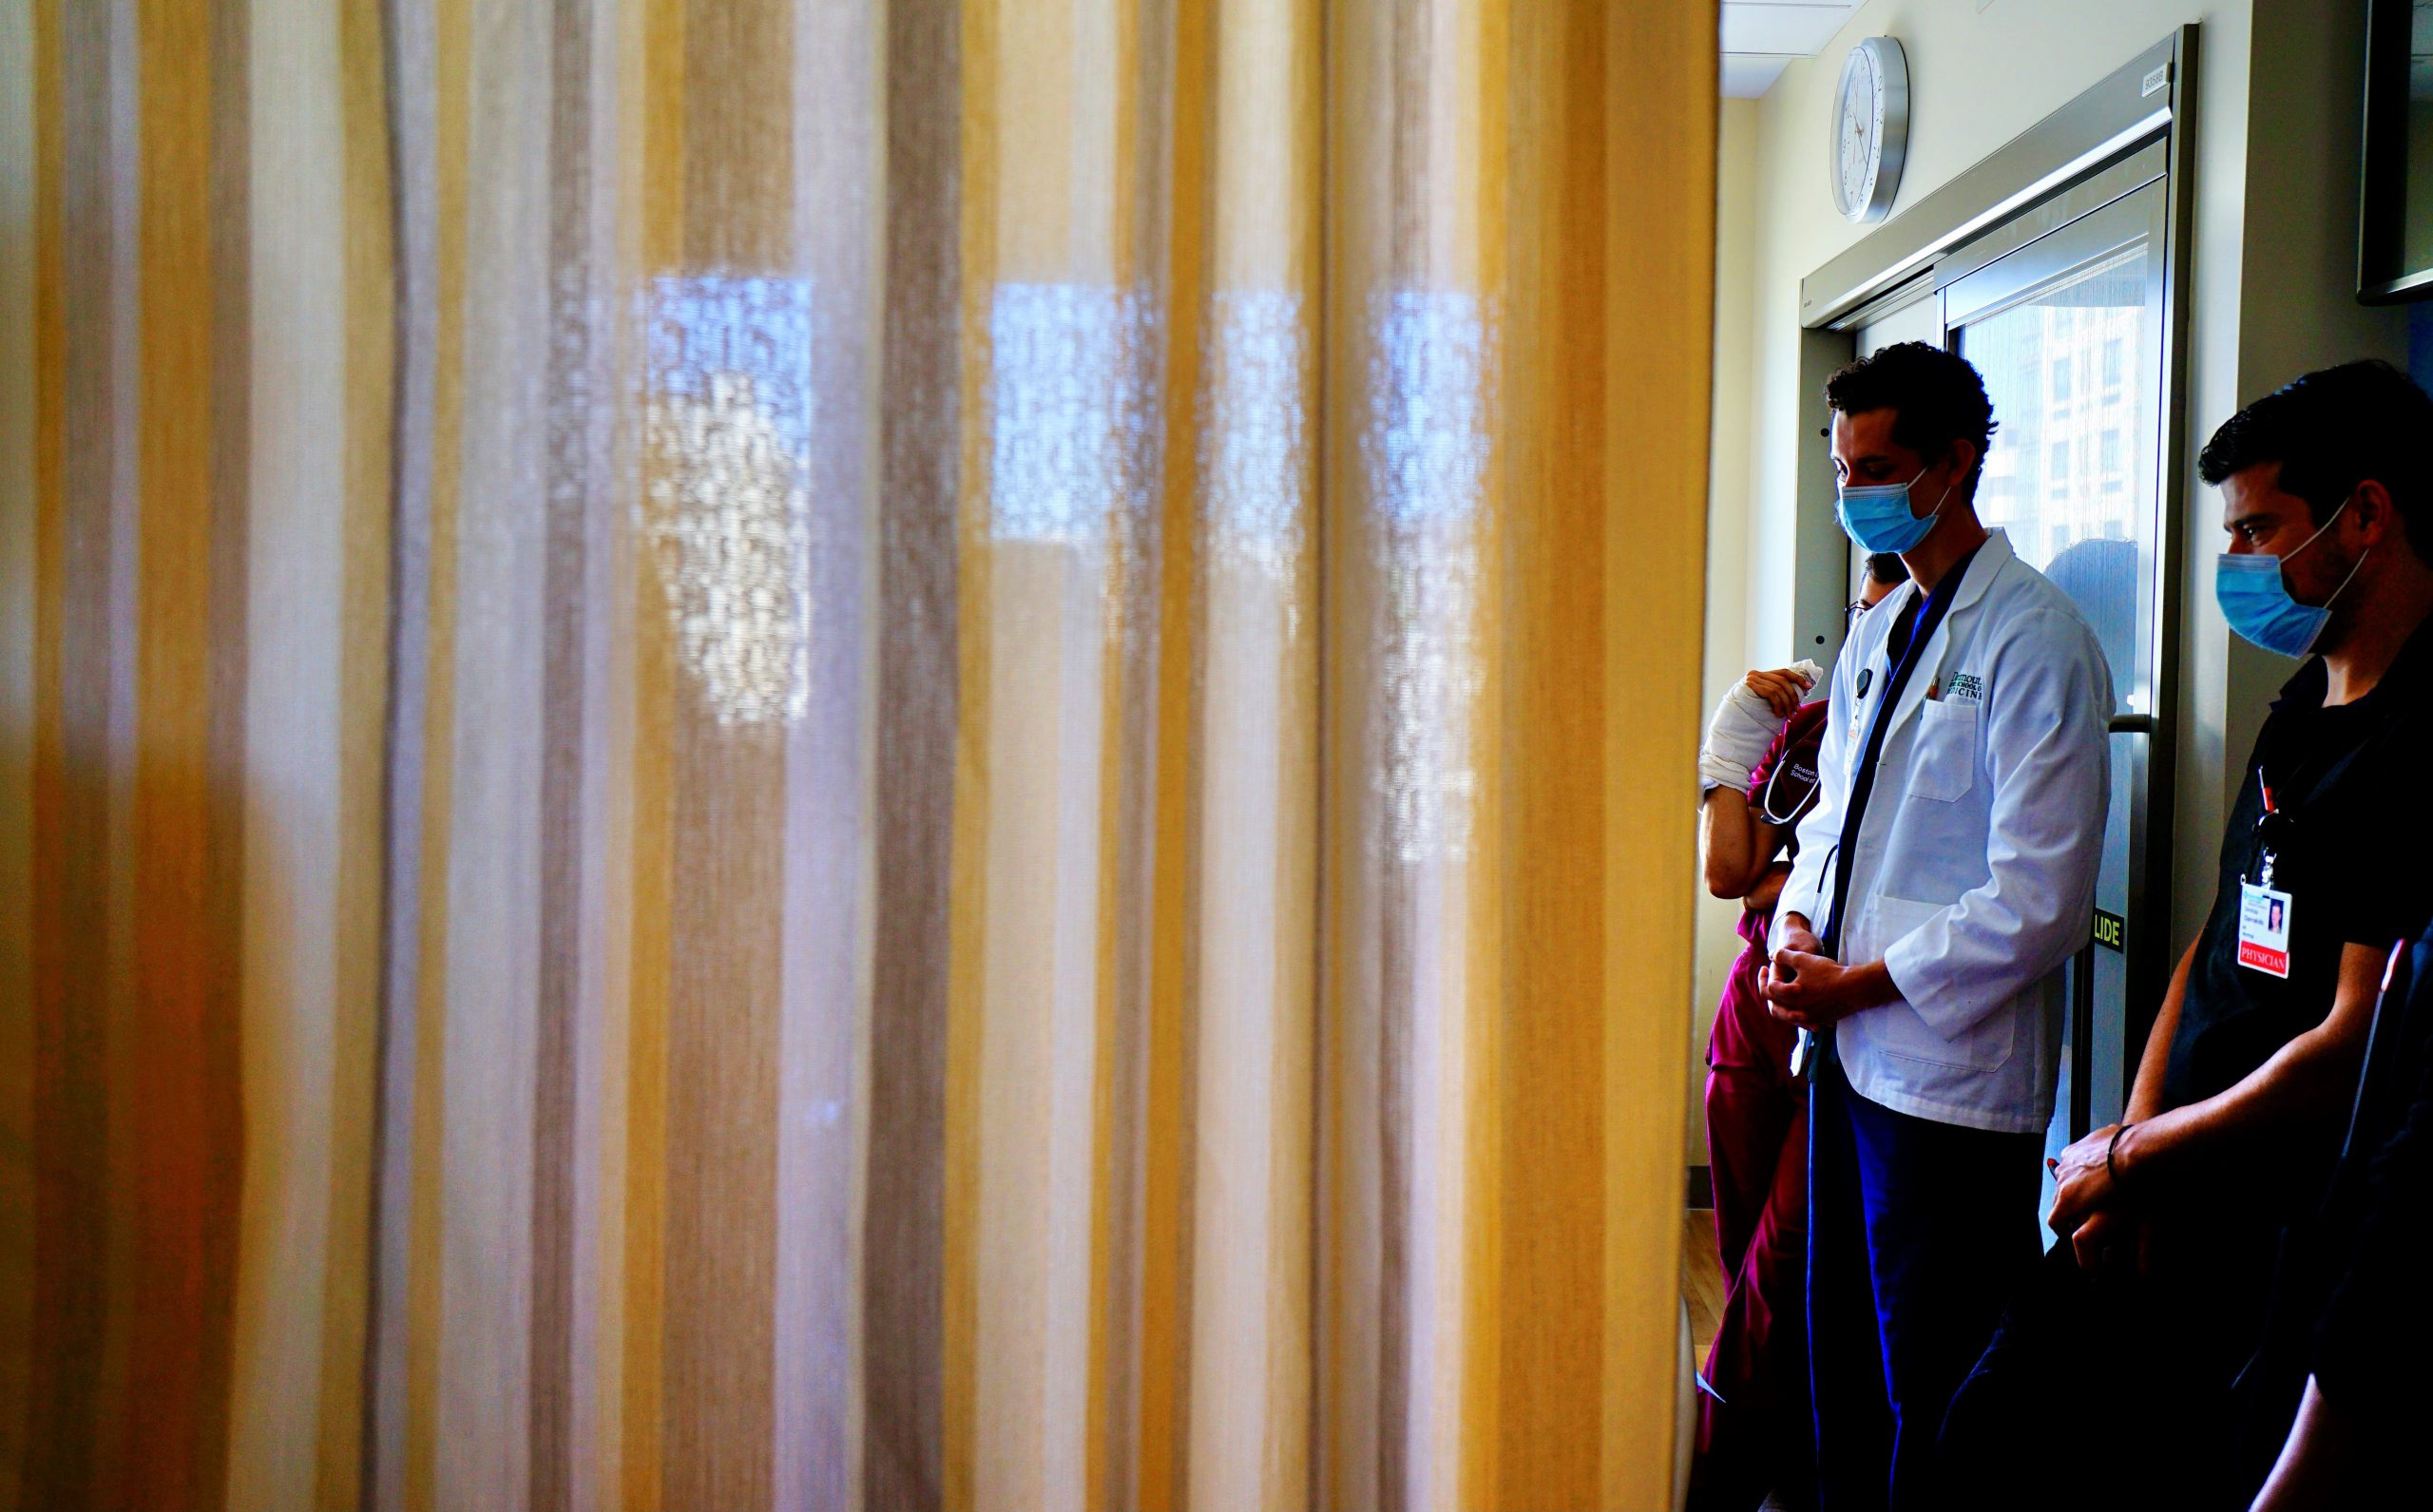 Residents greet a patient behind their bed curtain